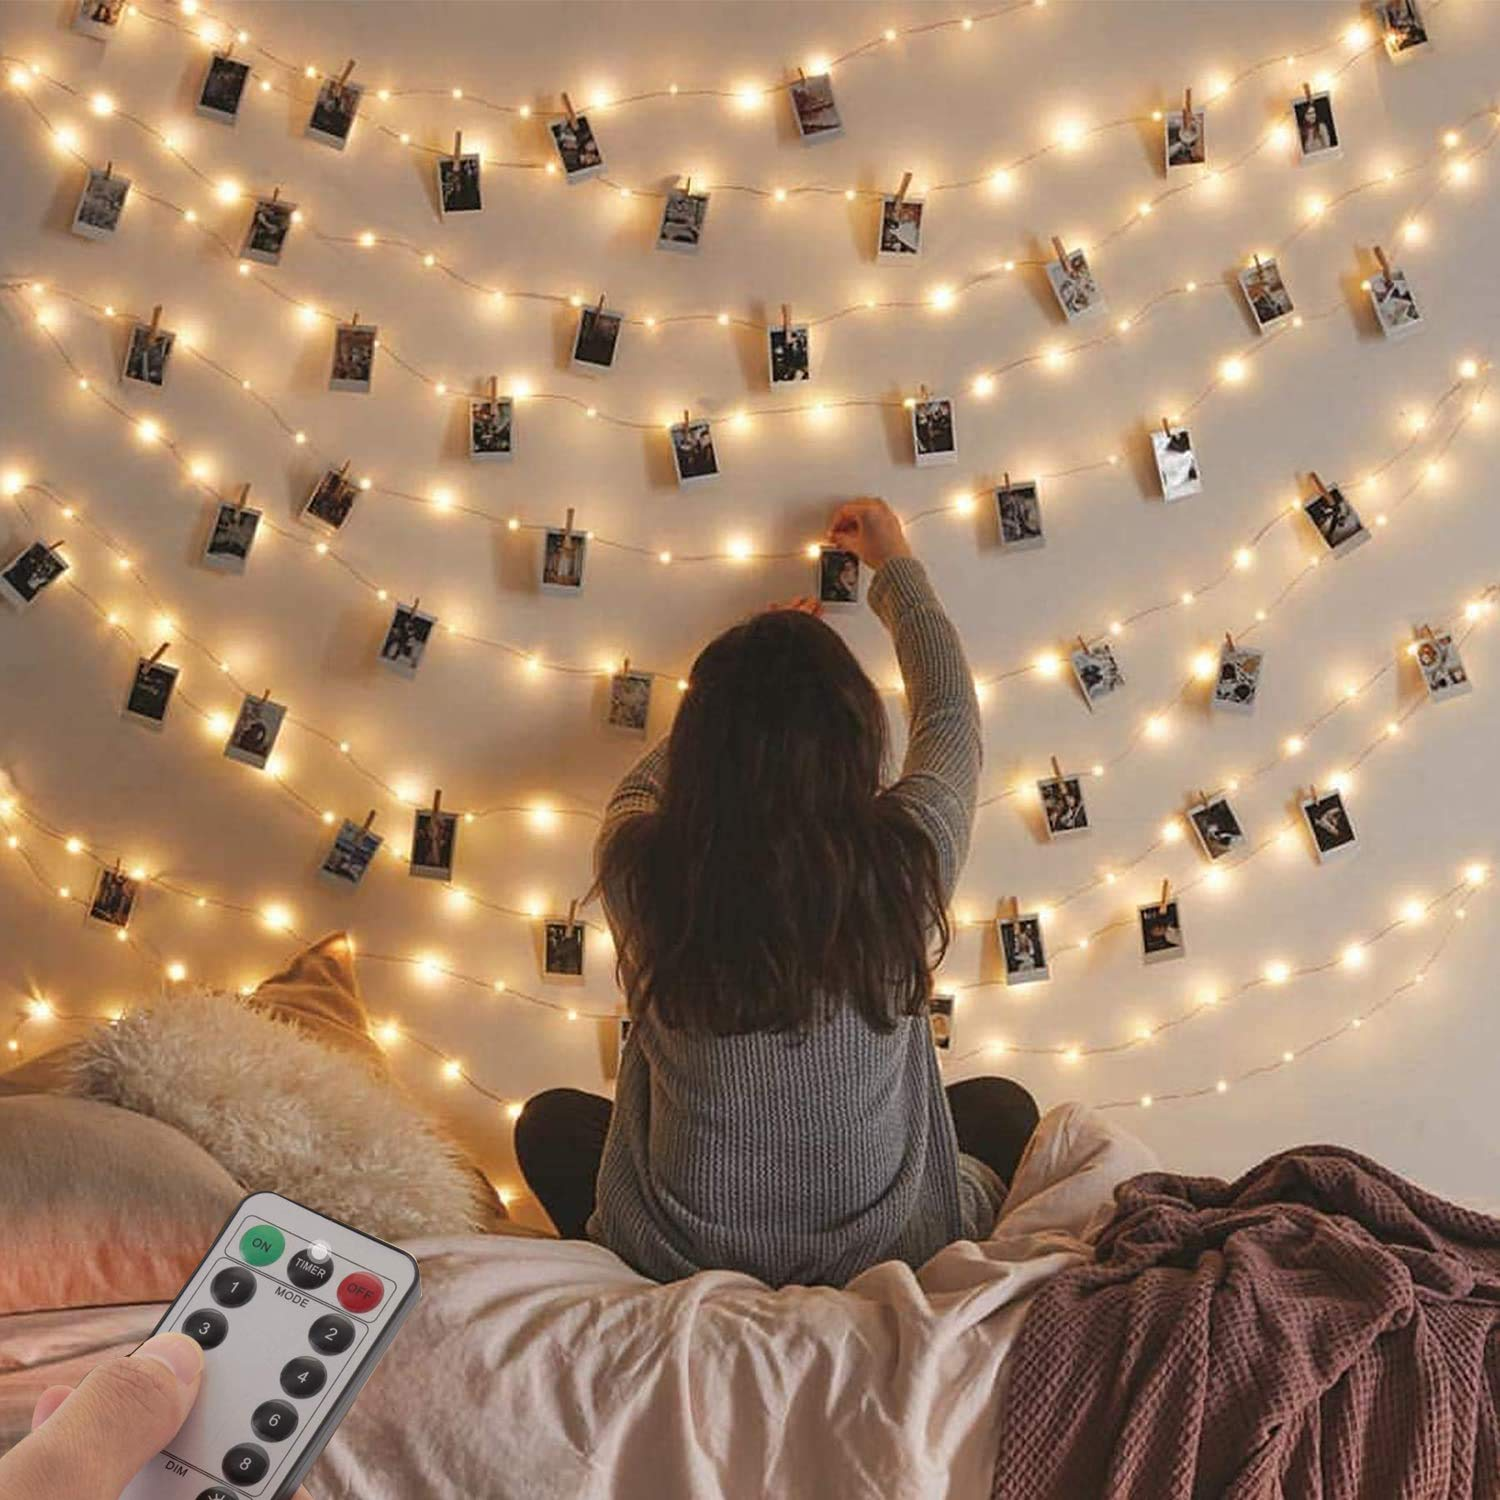 2 Pack Fairy String Lights, 120LED 12M USB Plug in Powered Lights Waterproof Outdoor/Indoor Copper String Lights for Girls Boys Bedroom, Party, Wedding, Birthday, Party, Christmas, Decoration